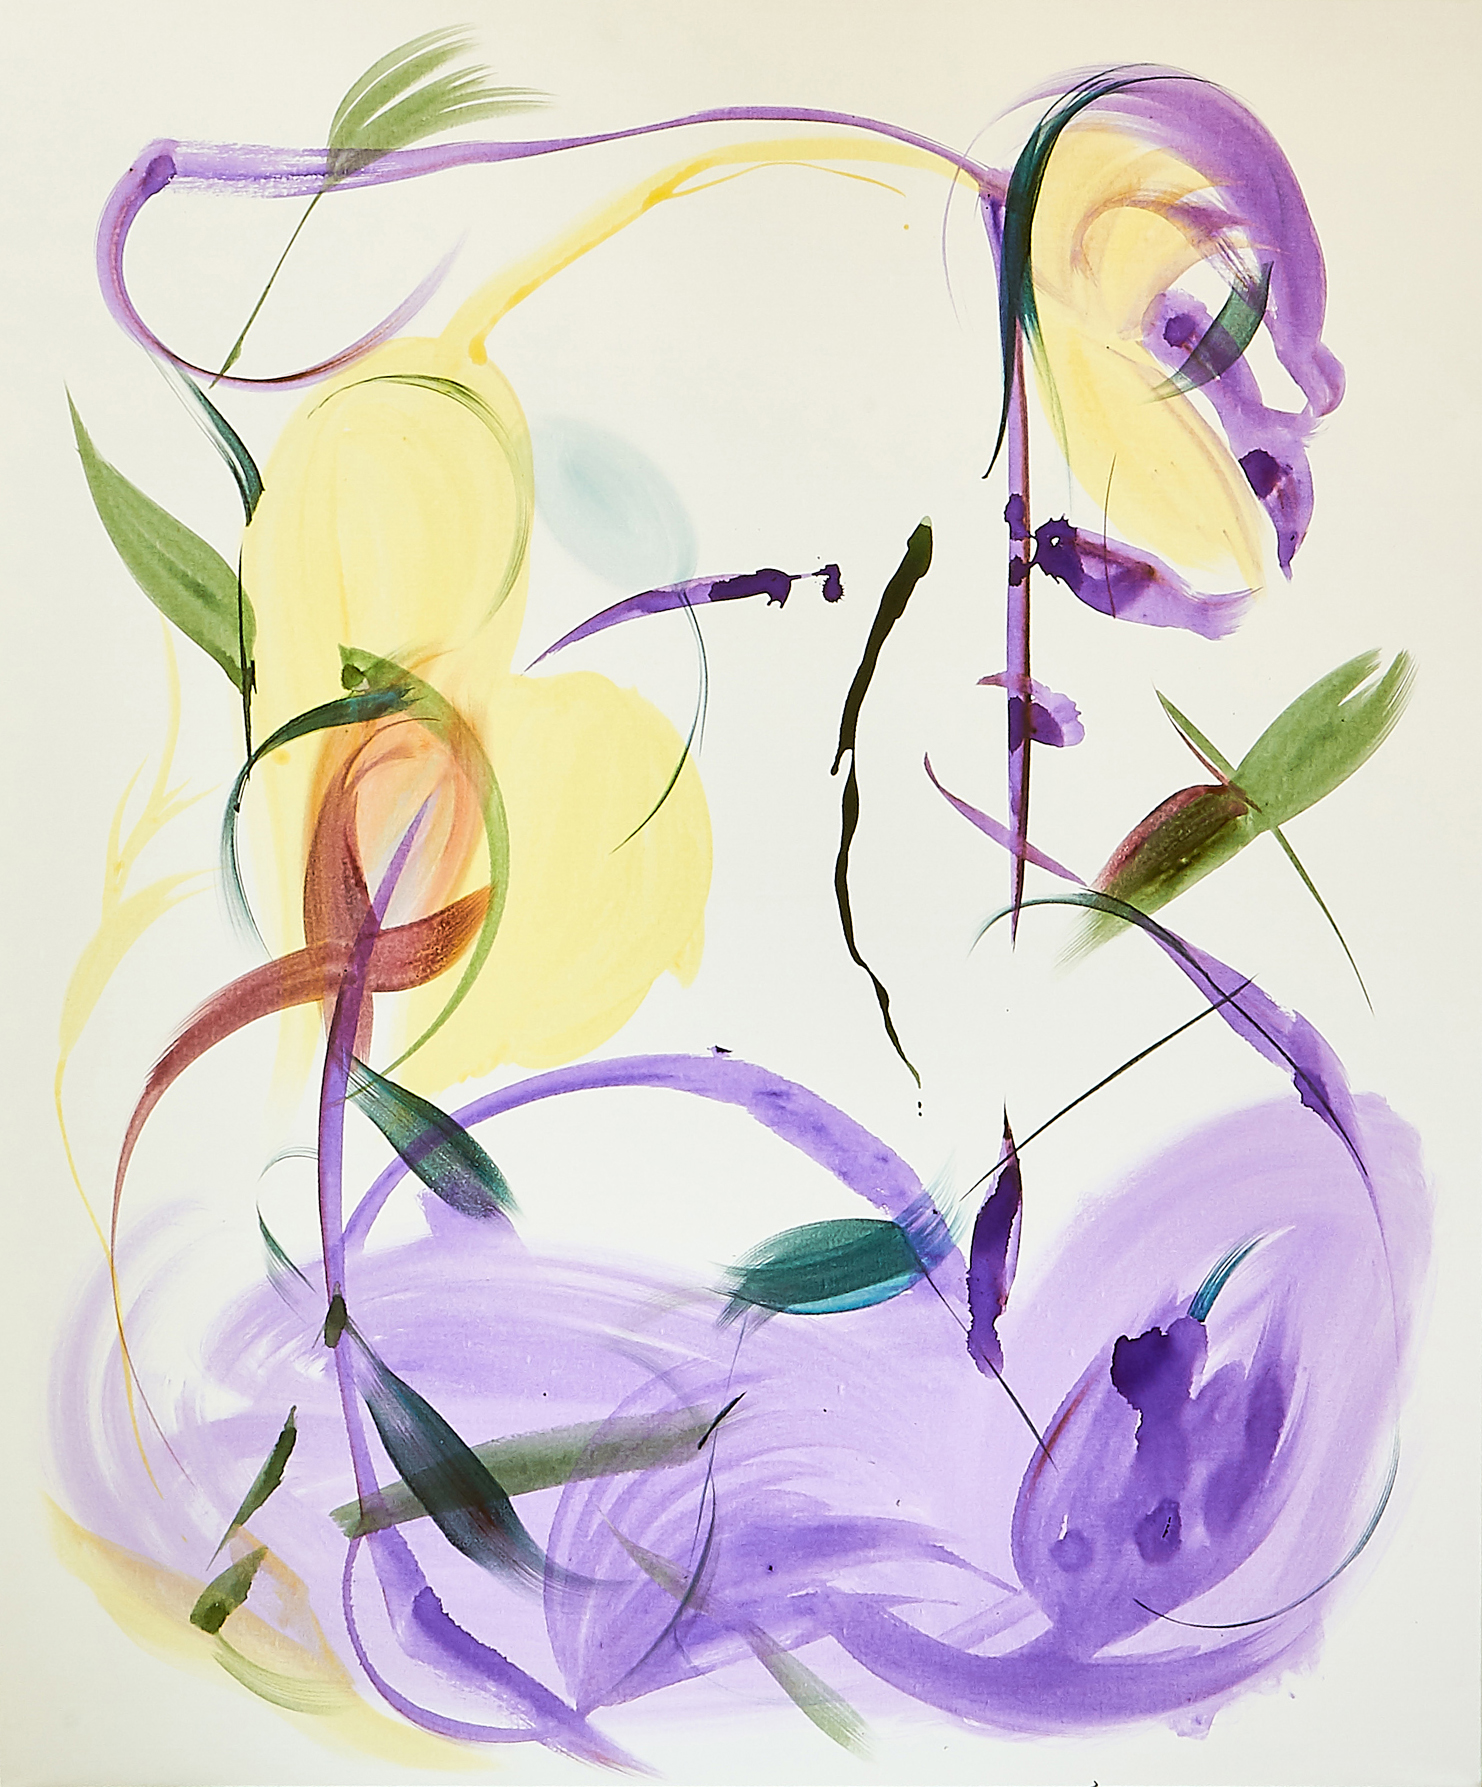 Huang Yanyan   Purple Poem  2019 Acrylic on Canvas 152.4 x 182.9 cm  Available